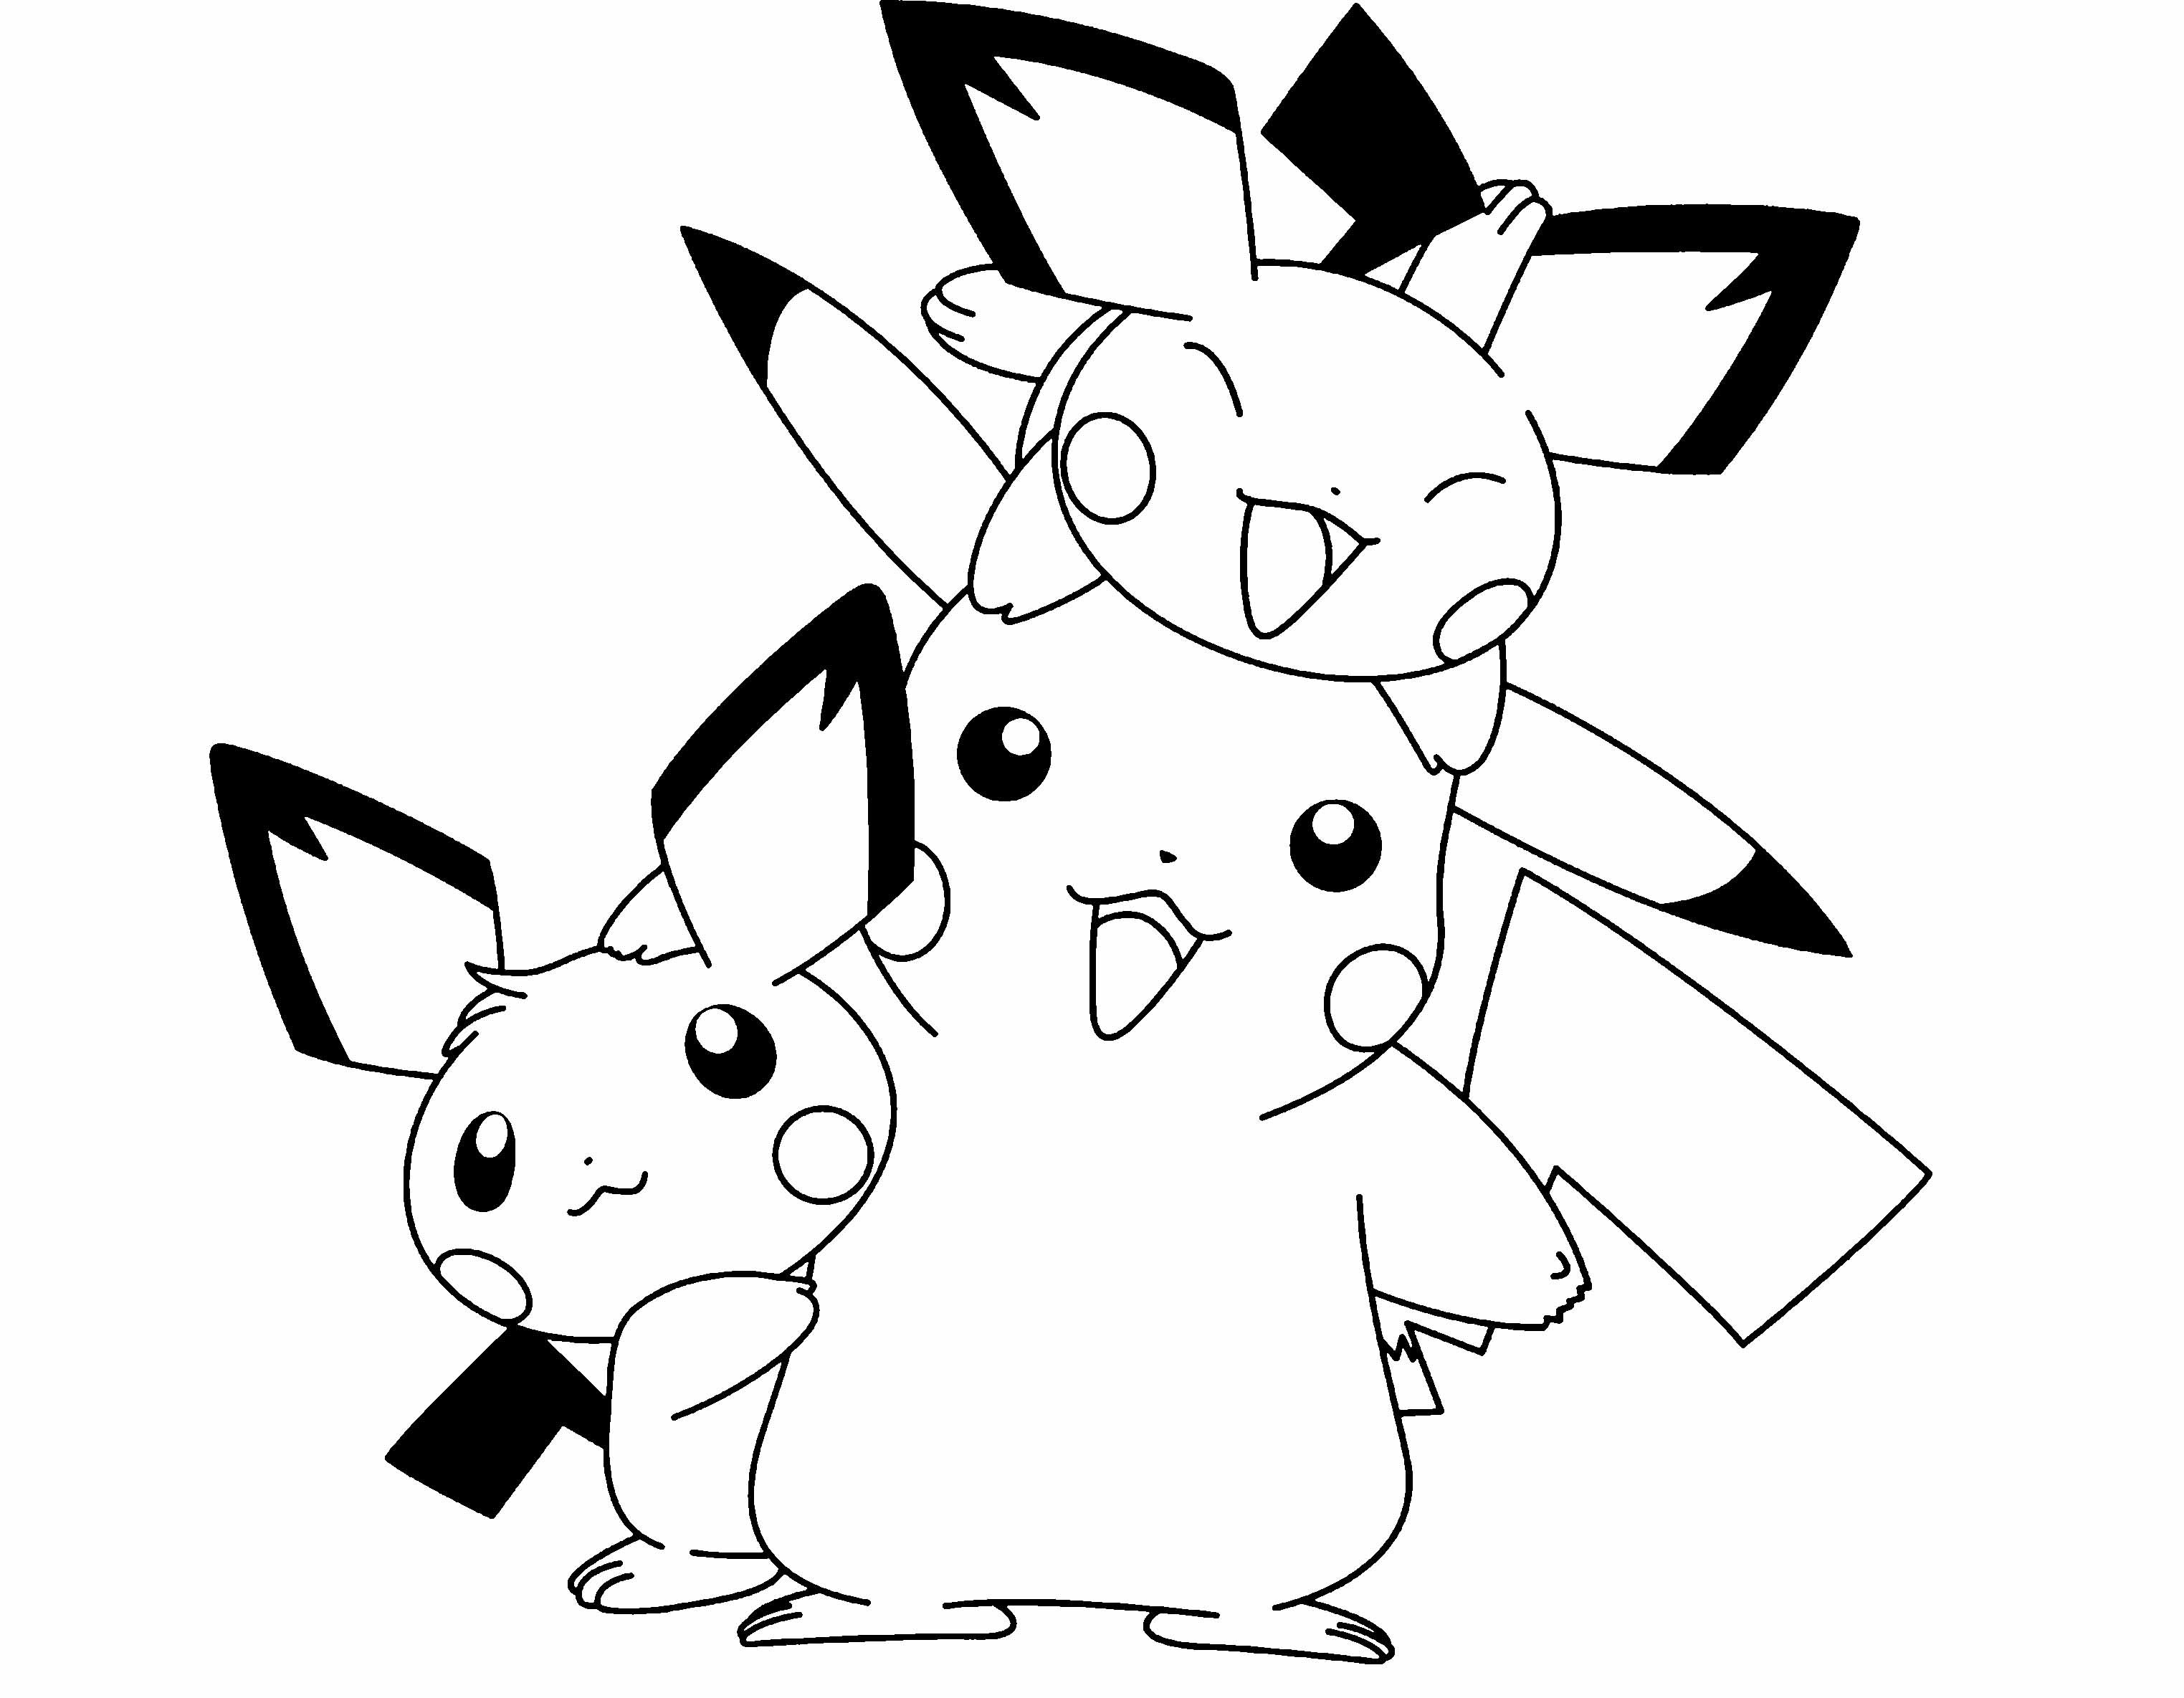 3047x2369 Pokemon Coloring Pages To Print Images Free Coloring Pages